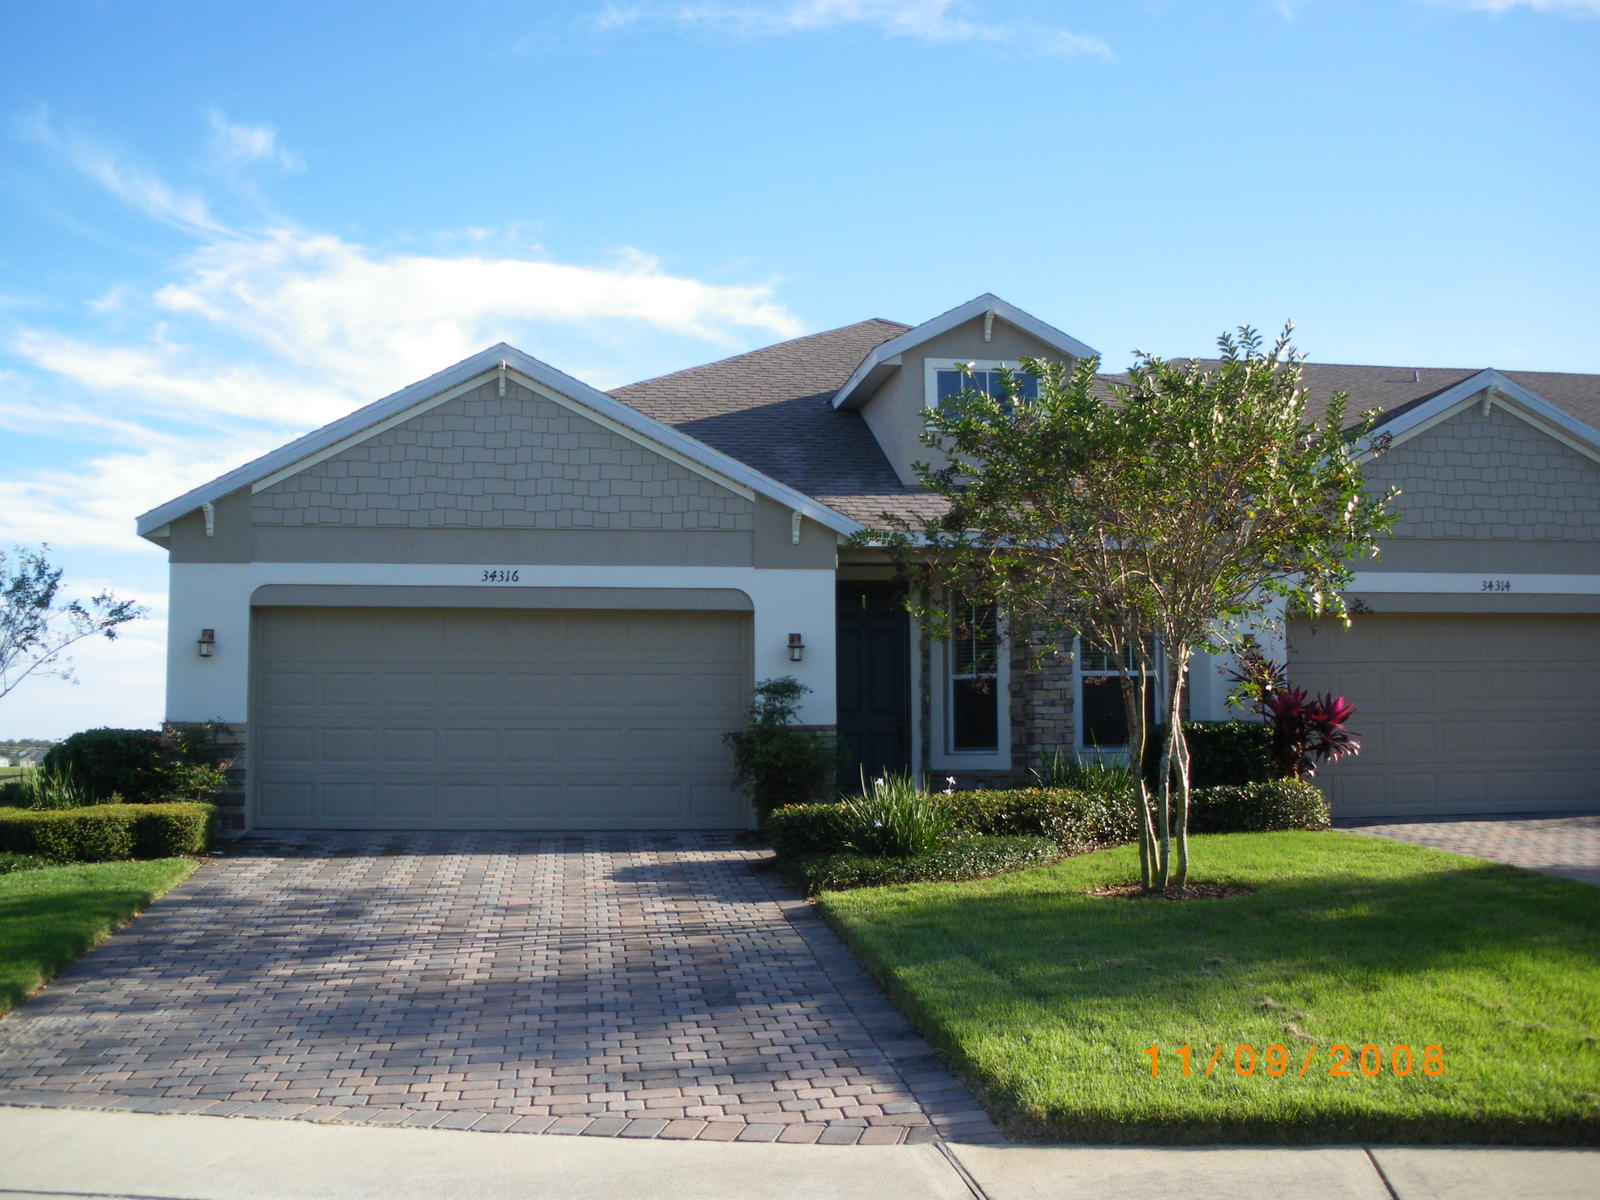 Beautiful golf course town home in central florida for for Florida country homes